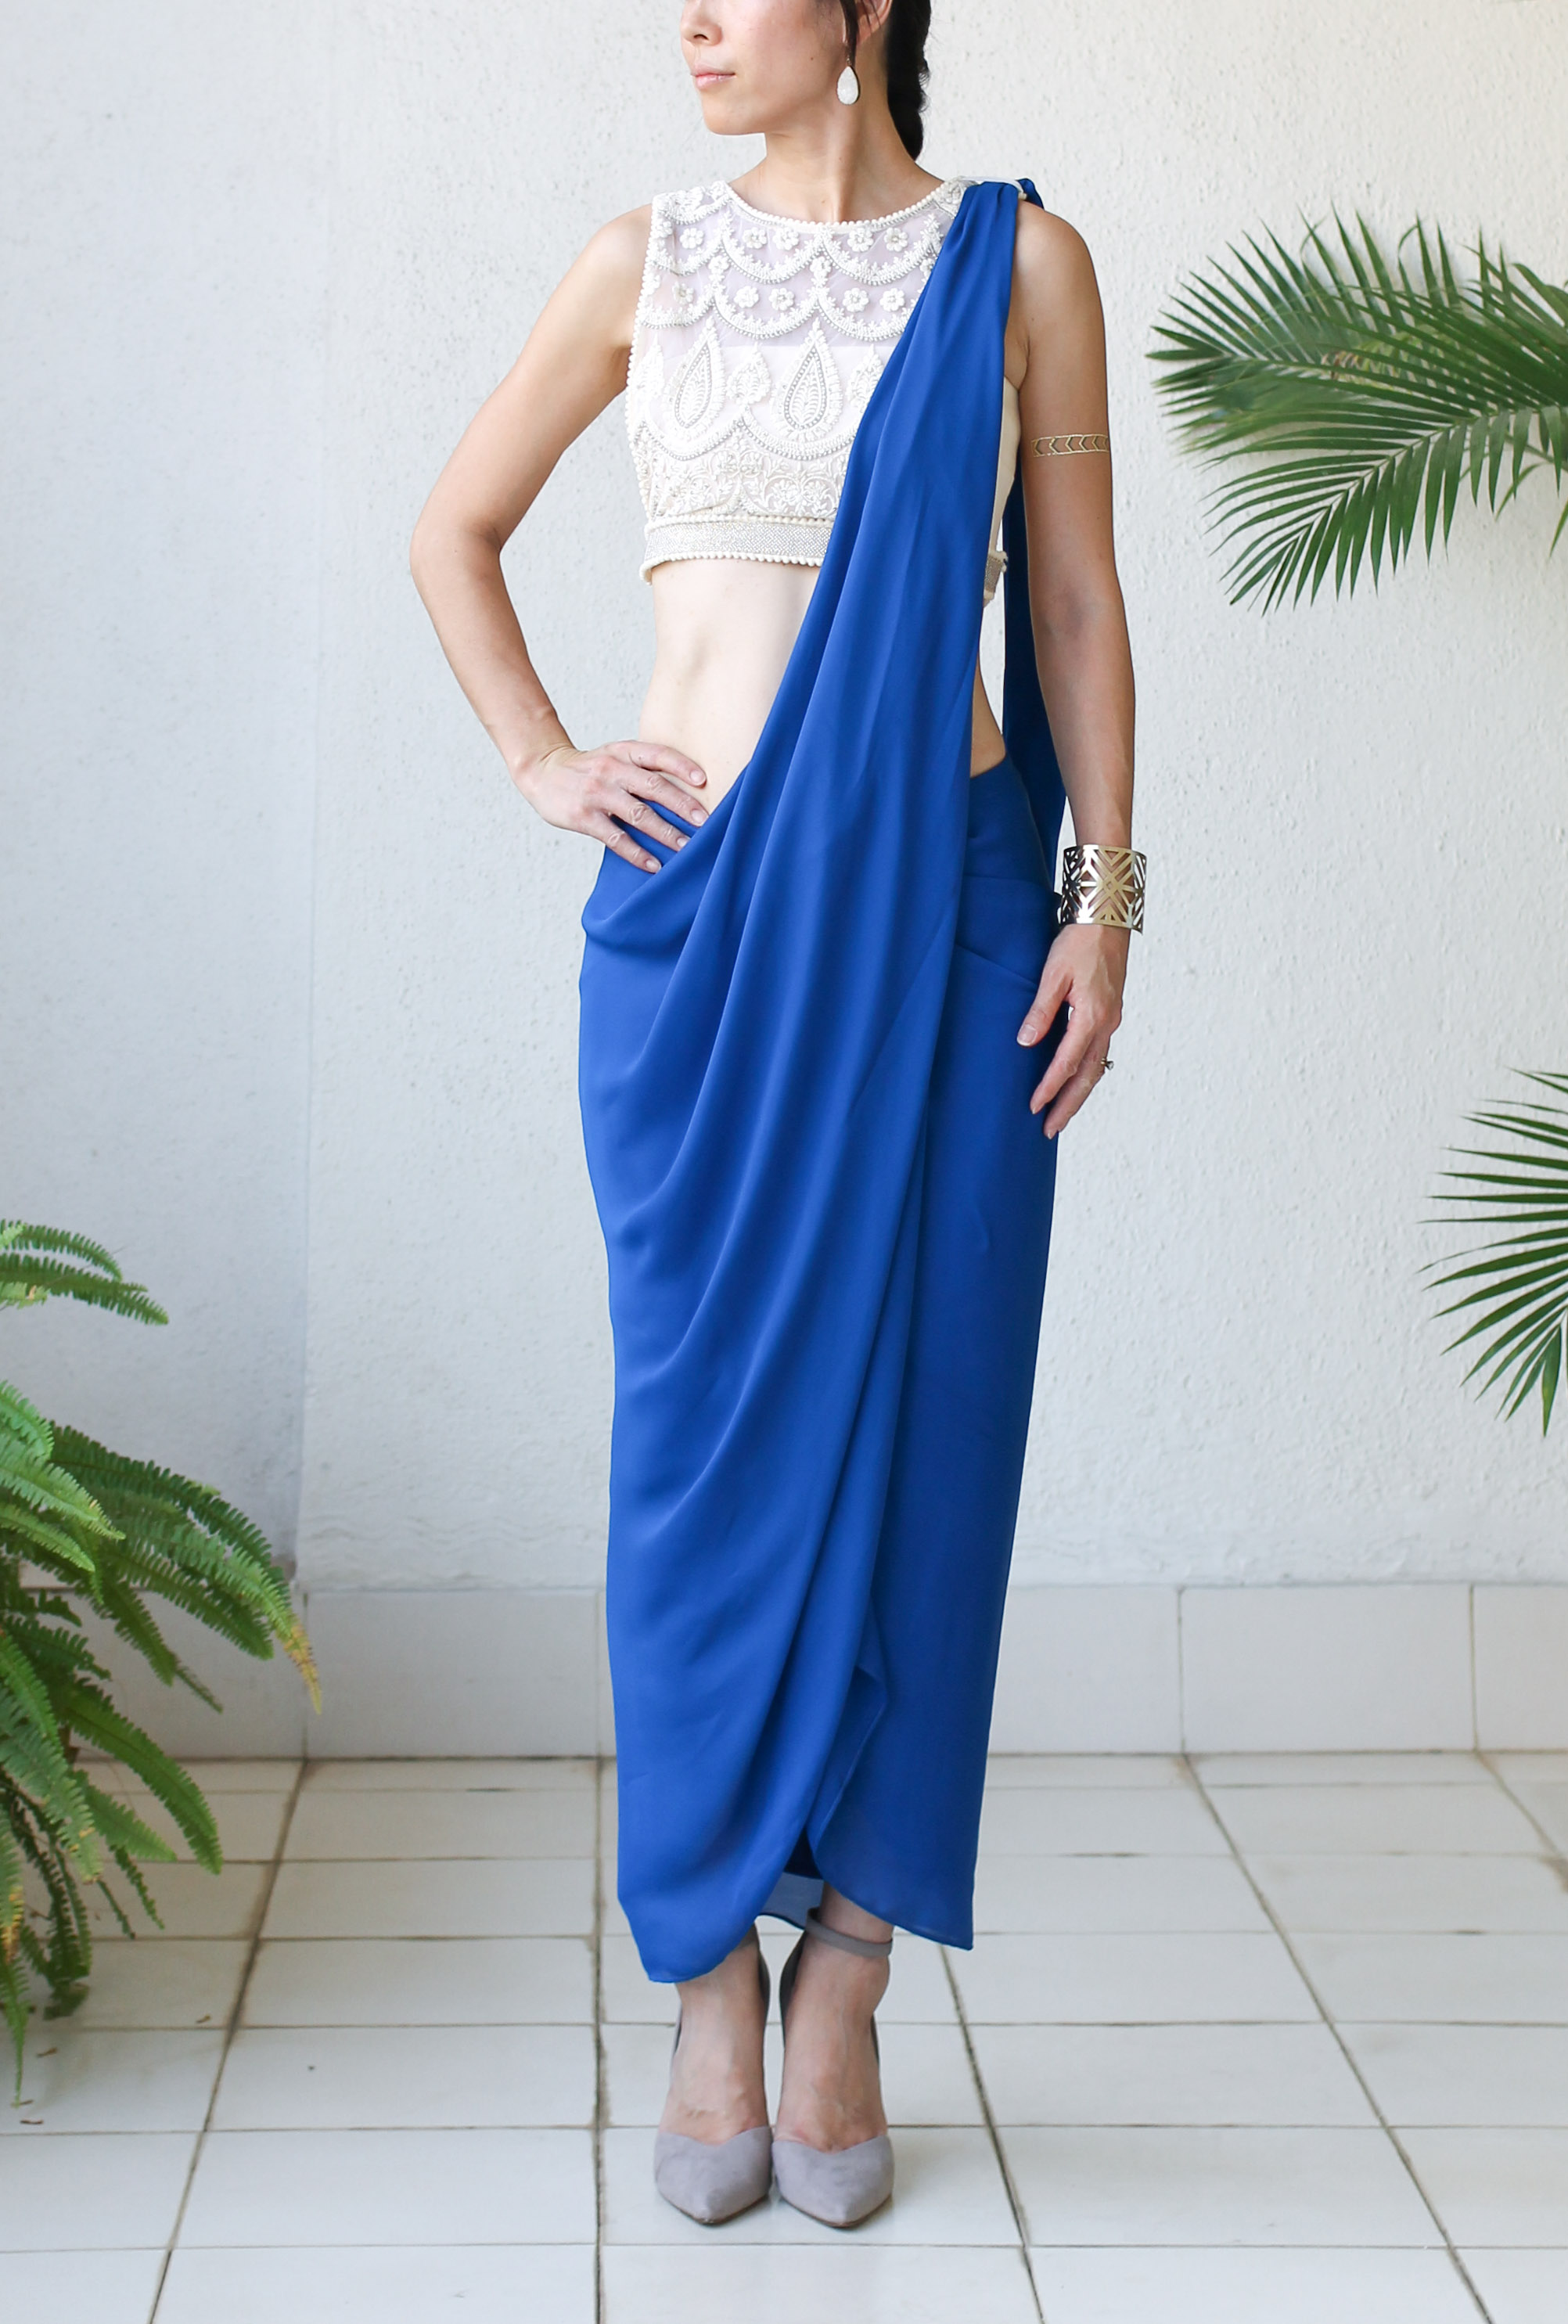 Micky Tan Blue Sari Dress-8